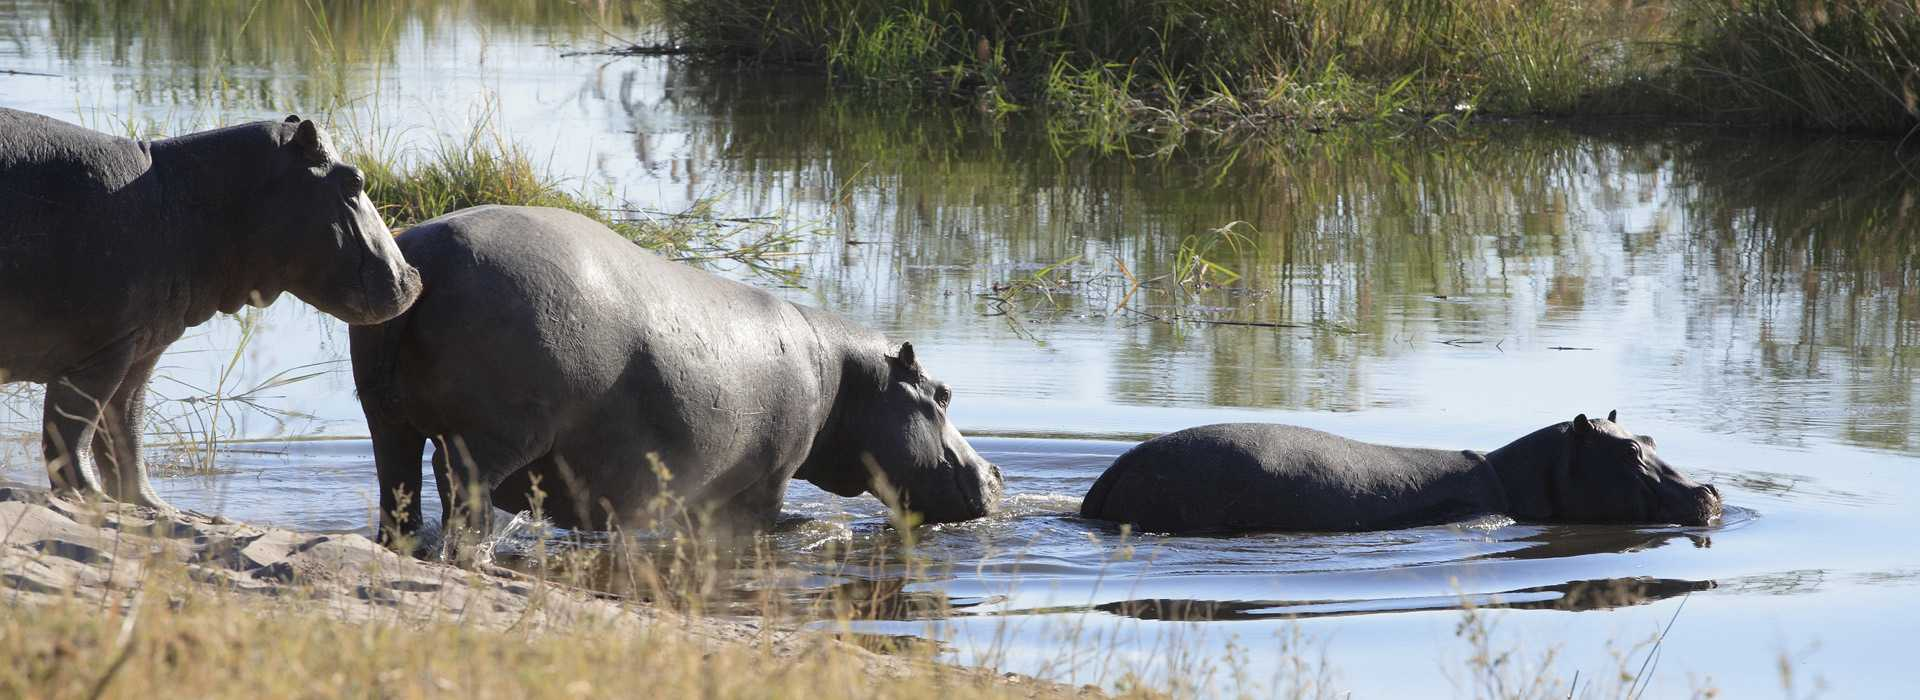 Hippos In The Water, Botswana